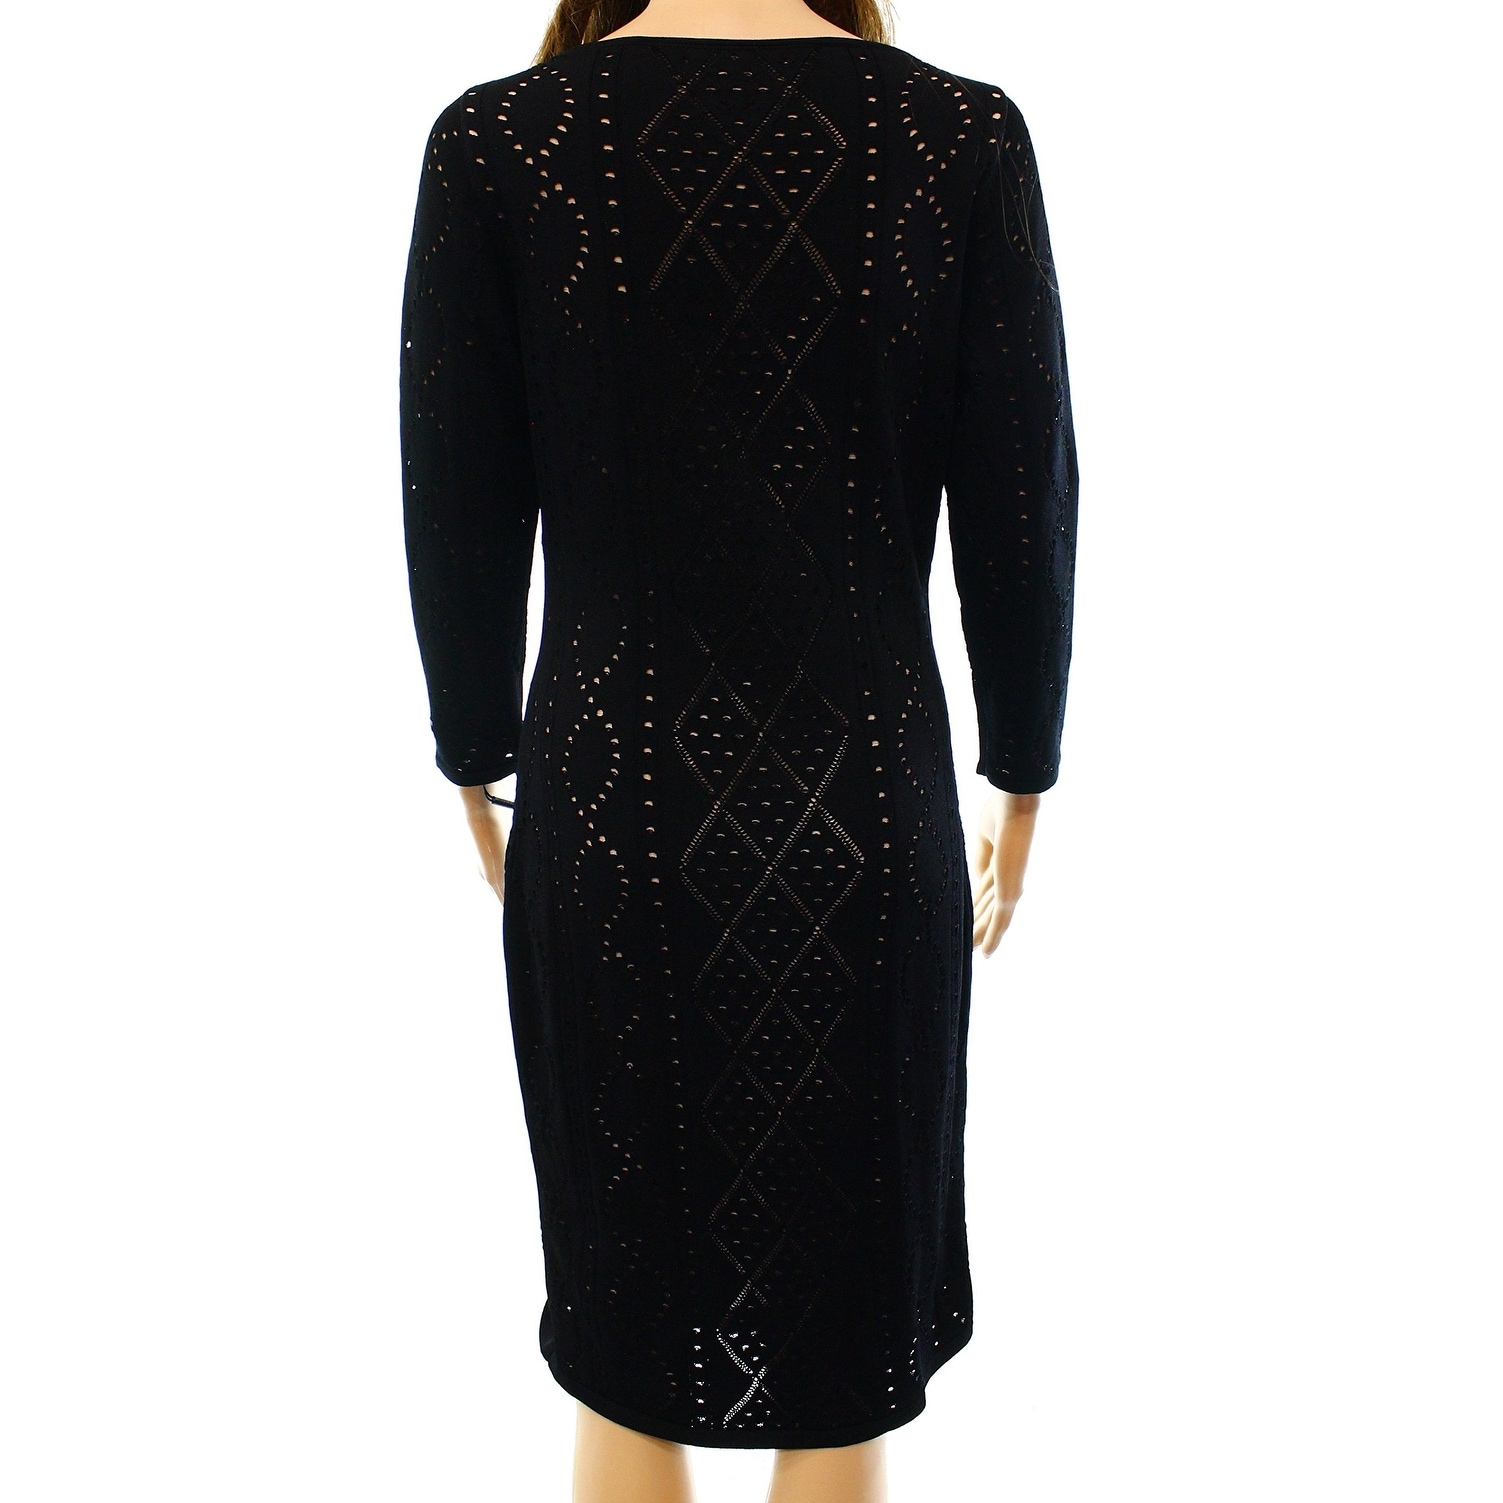 dcd58453 Shop Calvin Klein NEW Black Womens Size XL Laser Cut Stretch Bodycon Dress  - Free Shipping On Orders Over $45 - Overstock - 17799080